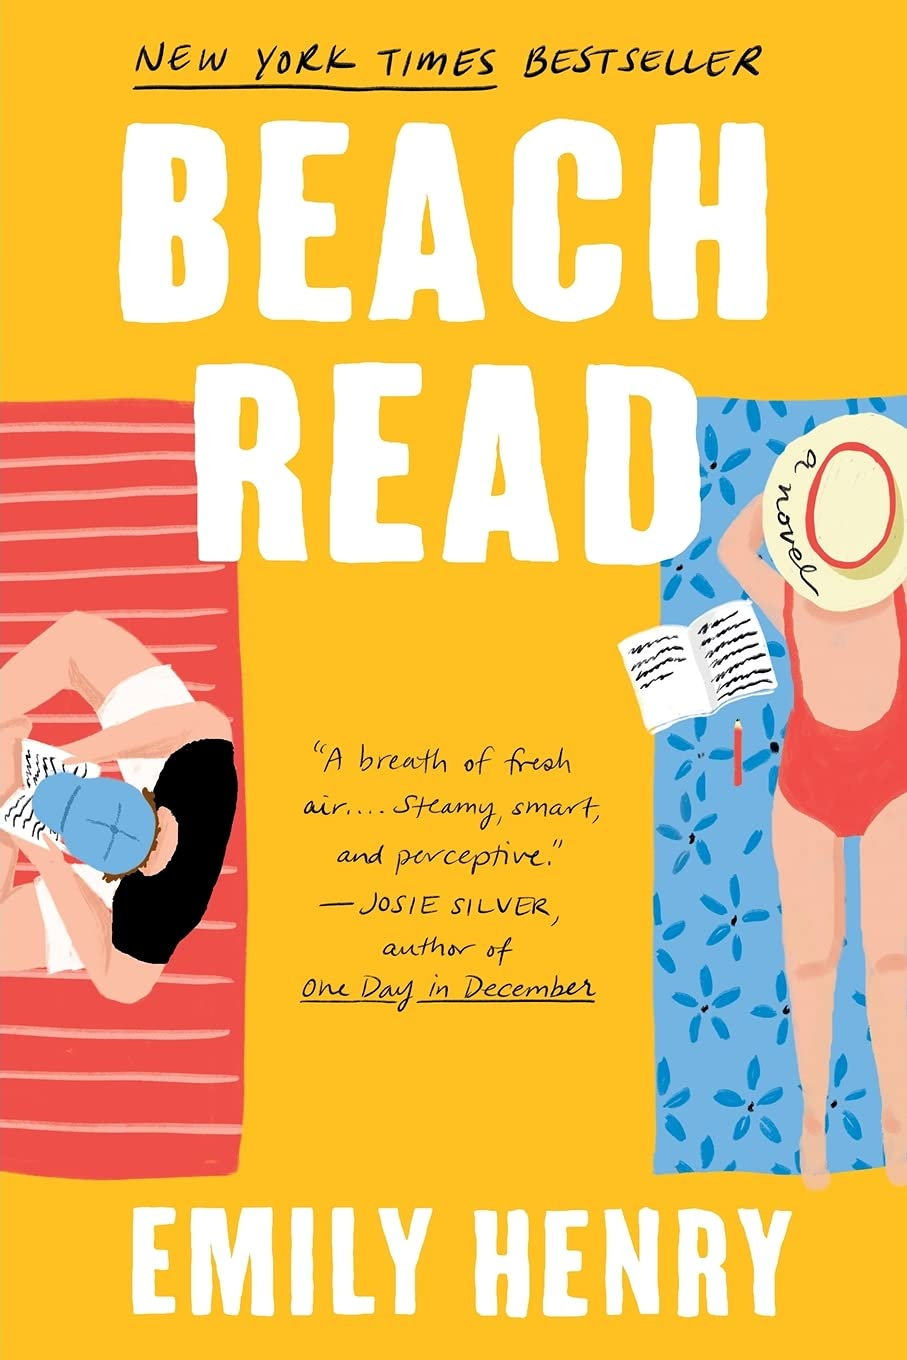 Beach Read book cover image from a June and July Reading Recap.